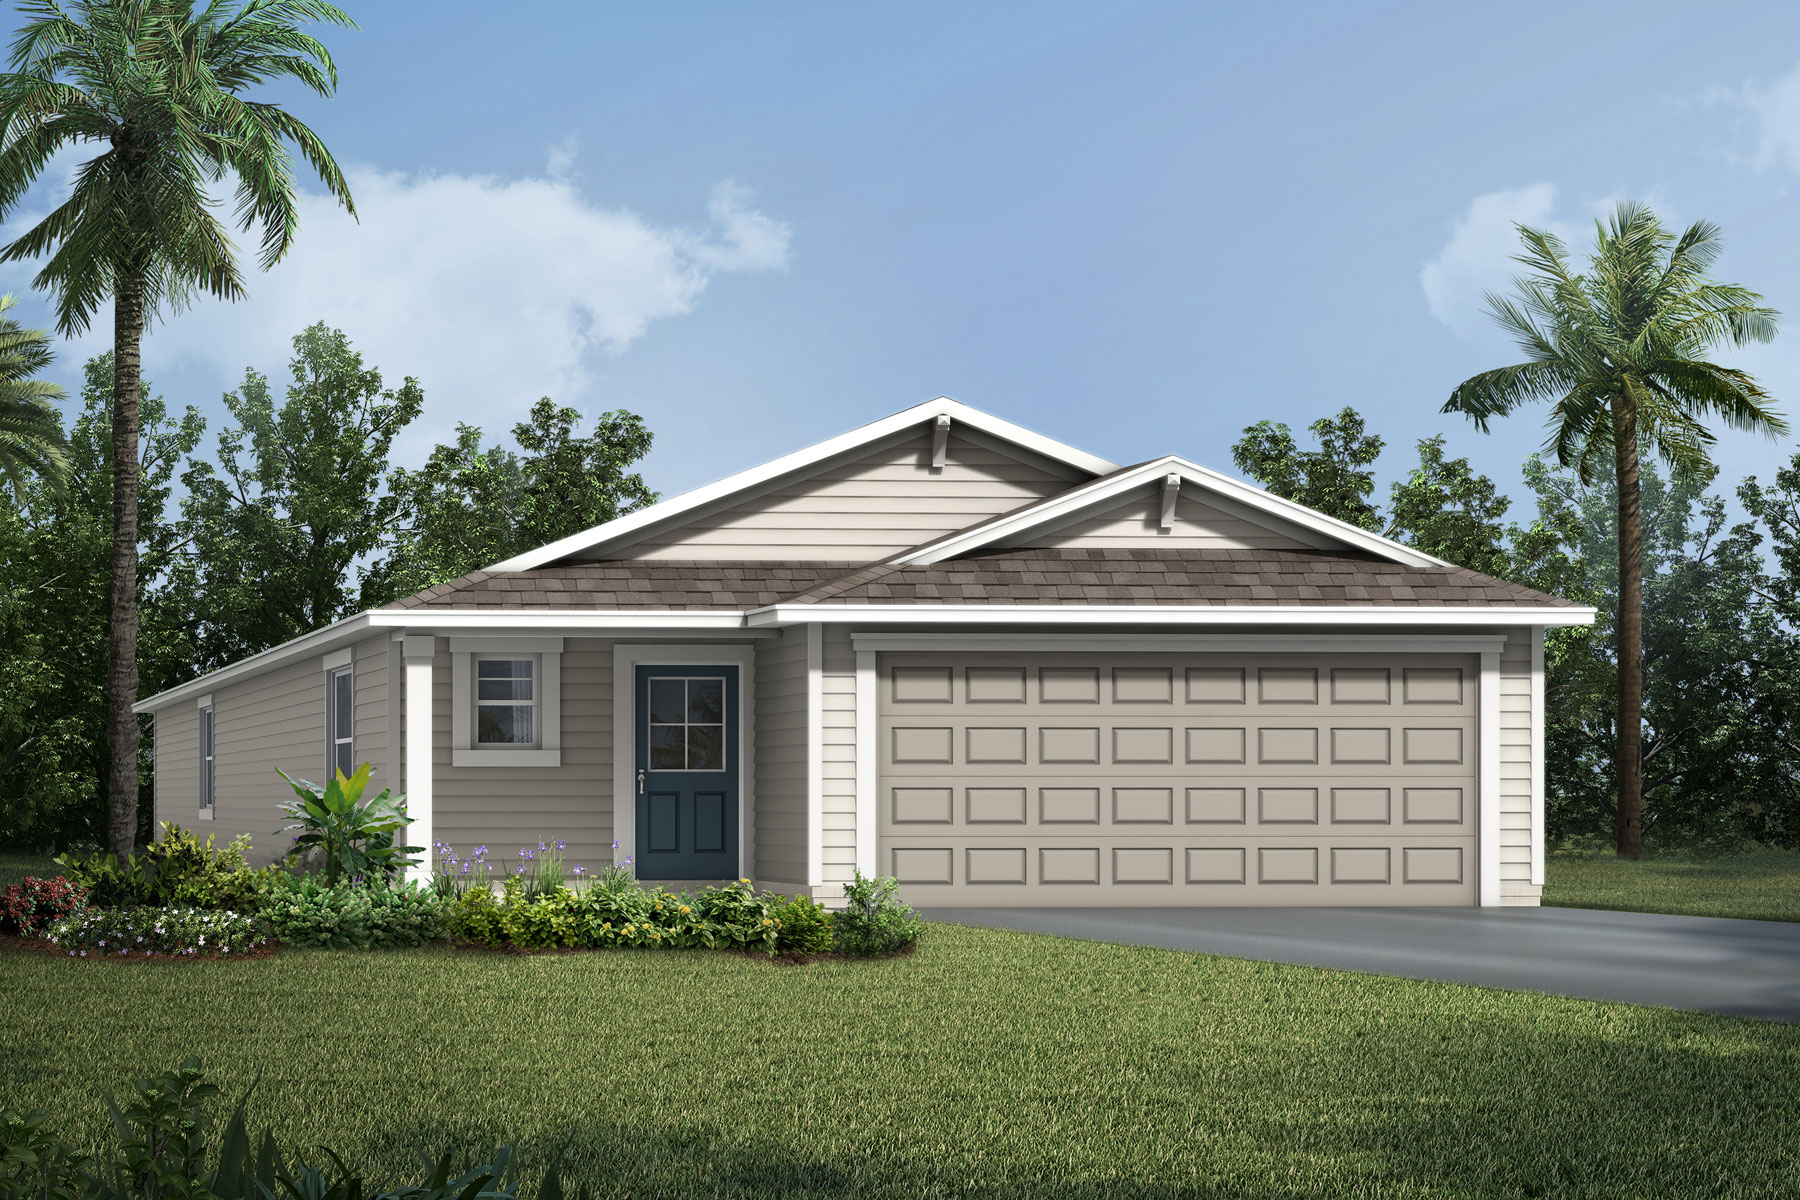 Carrabelle Plan Elevation Front at RiverTown - Haven in St. Johns Florida by Mattamy Homes